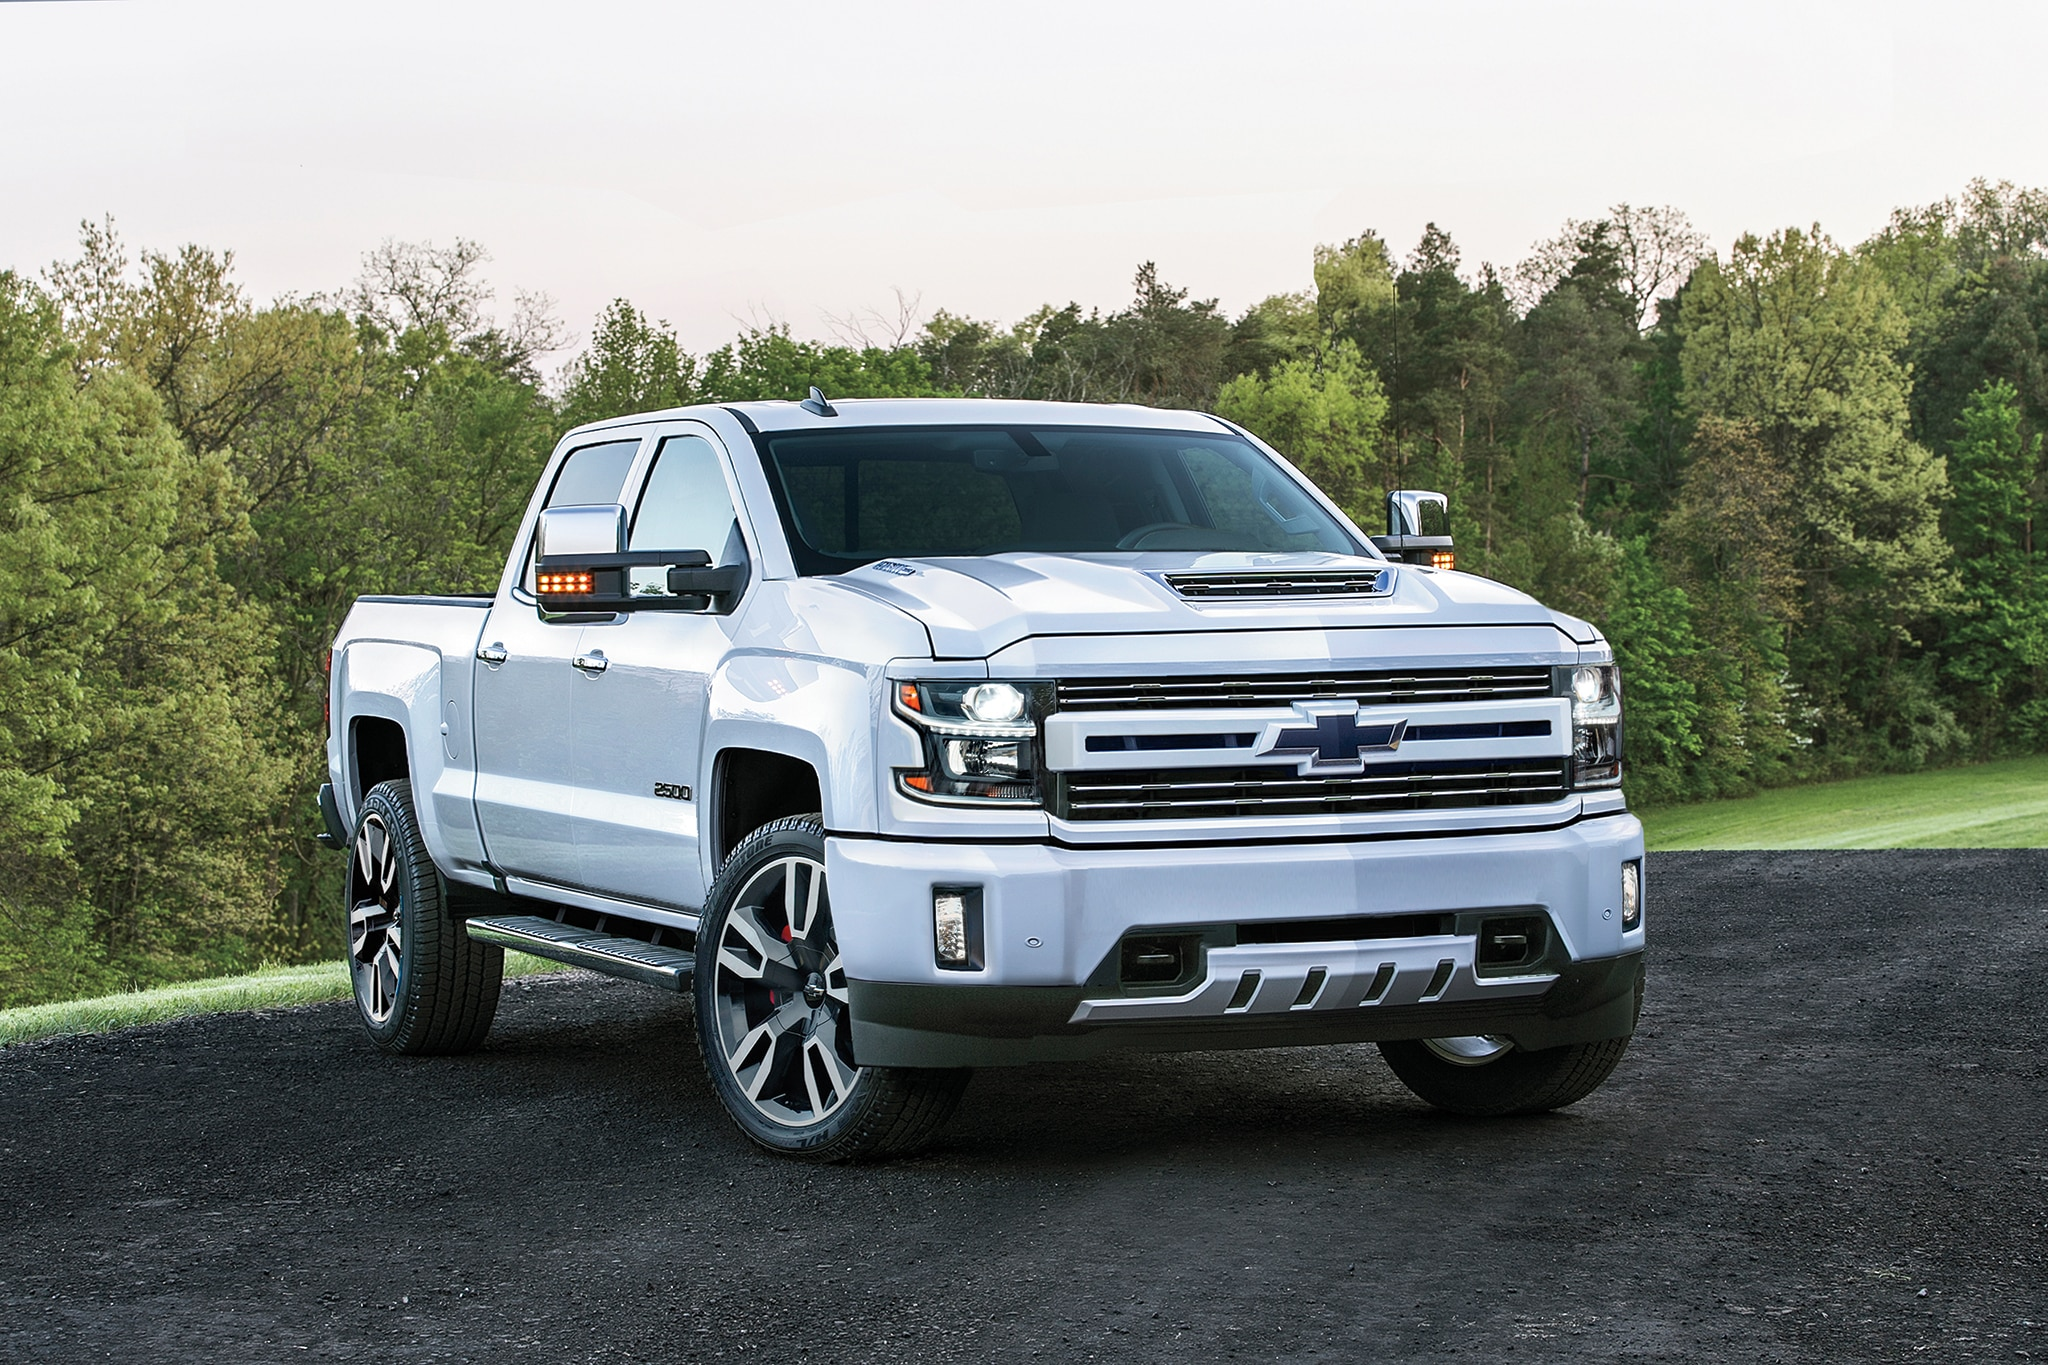 New Silverado 2500 Update? Pic Inside - 2015-2019 Chevy ...